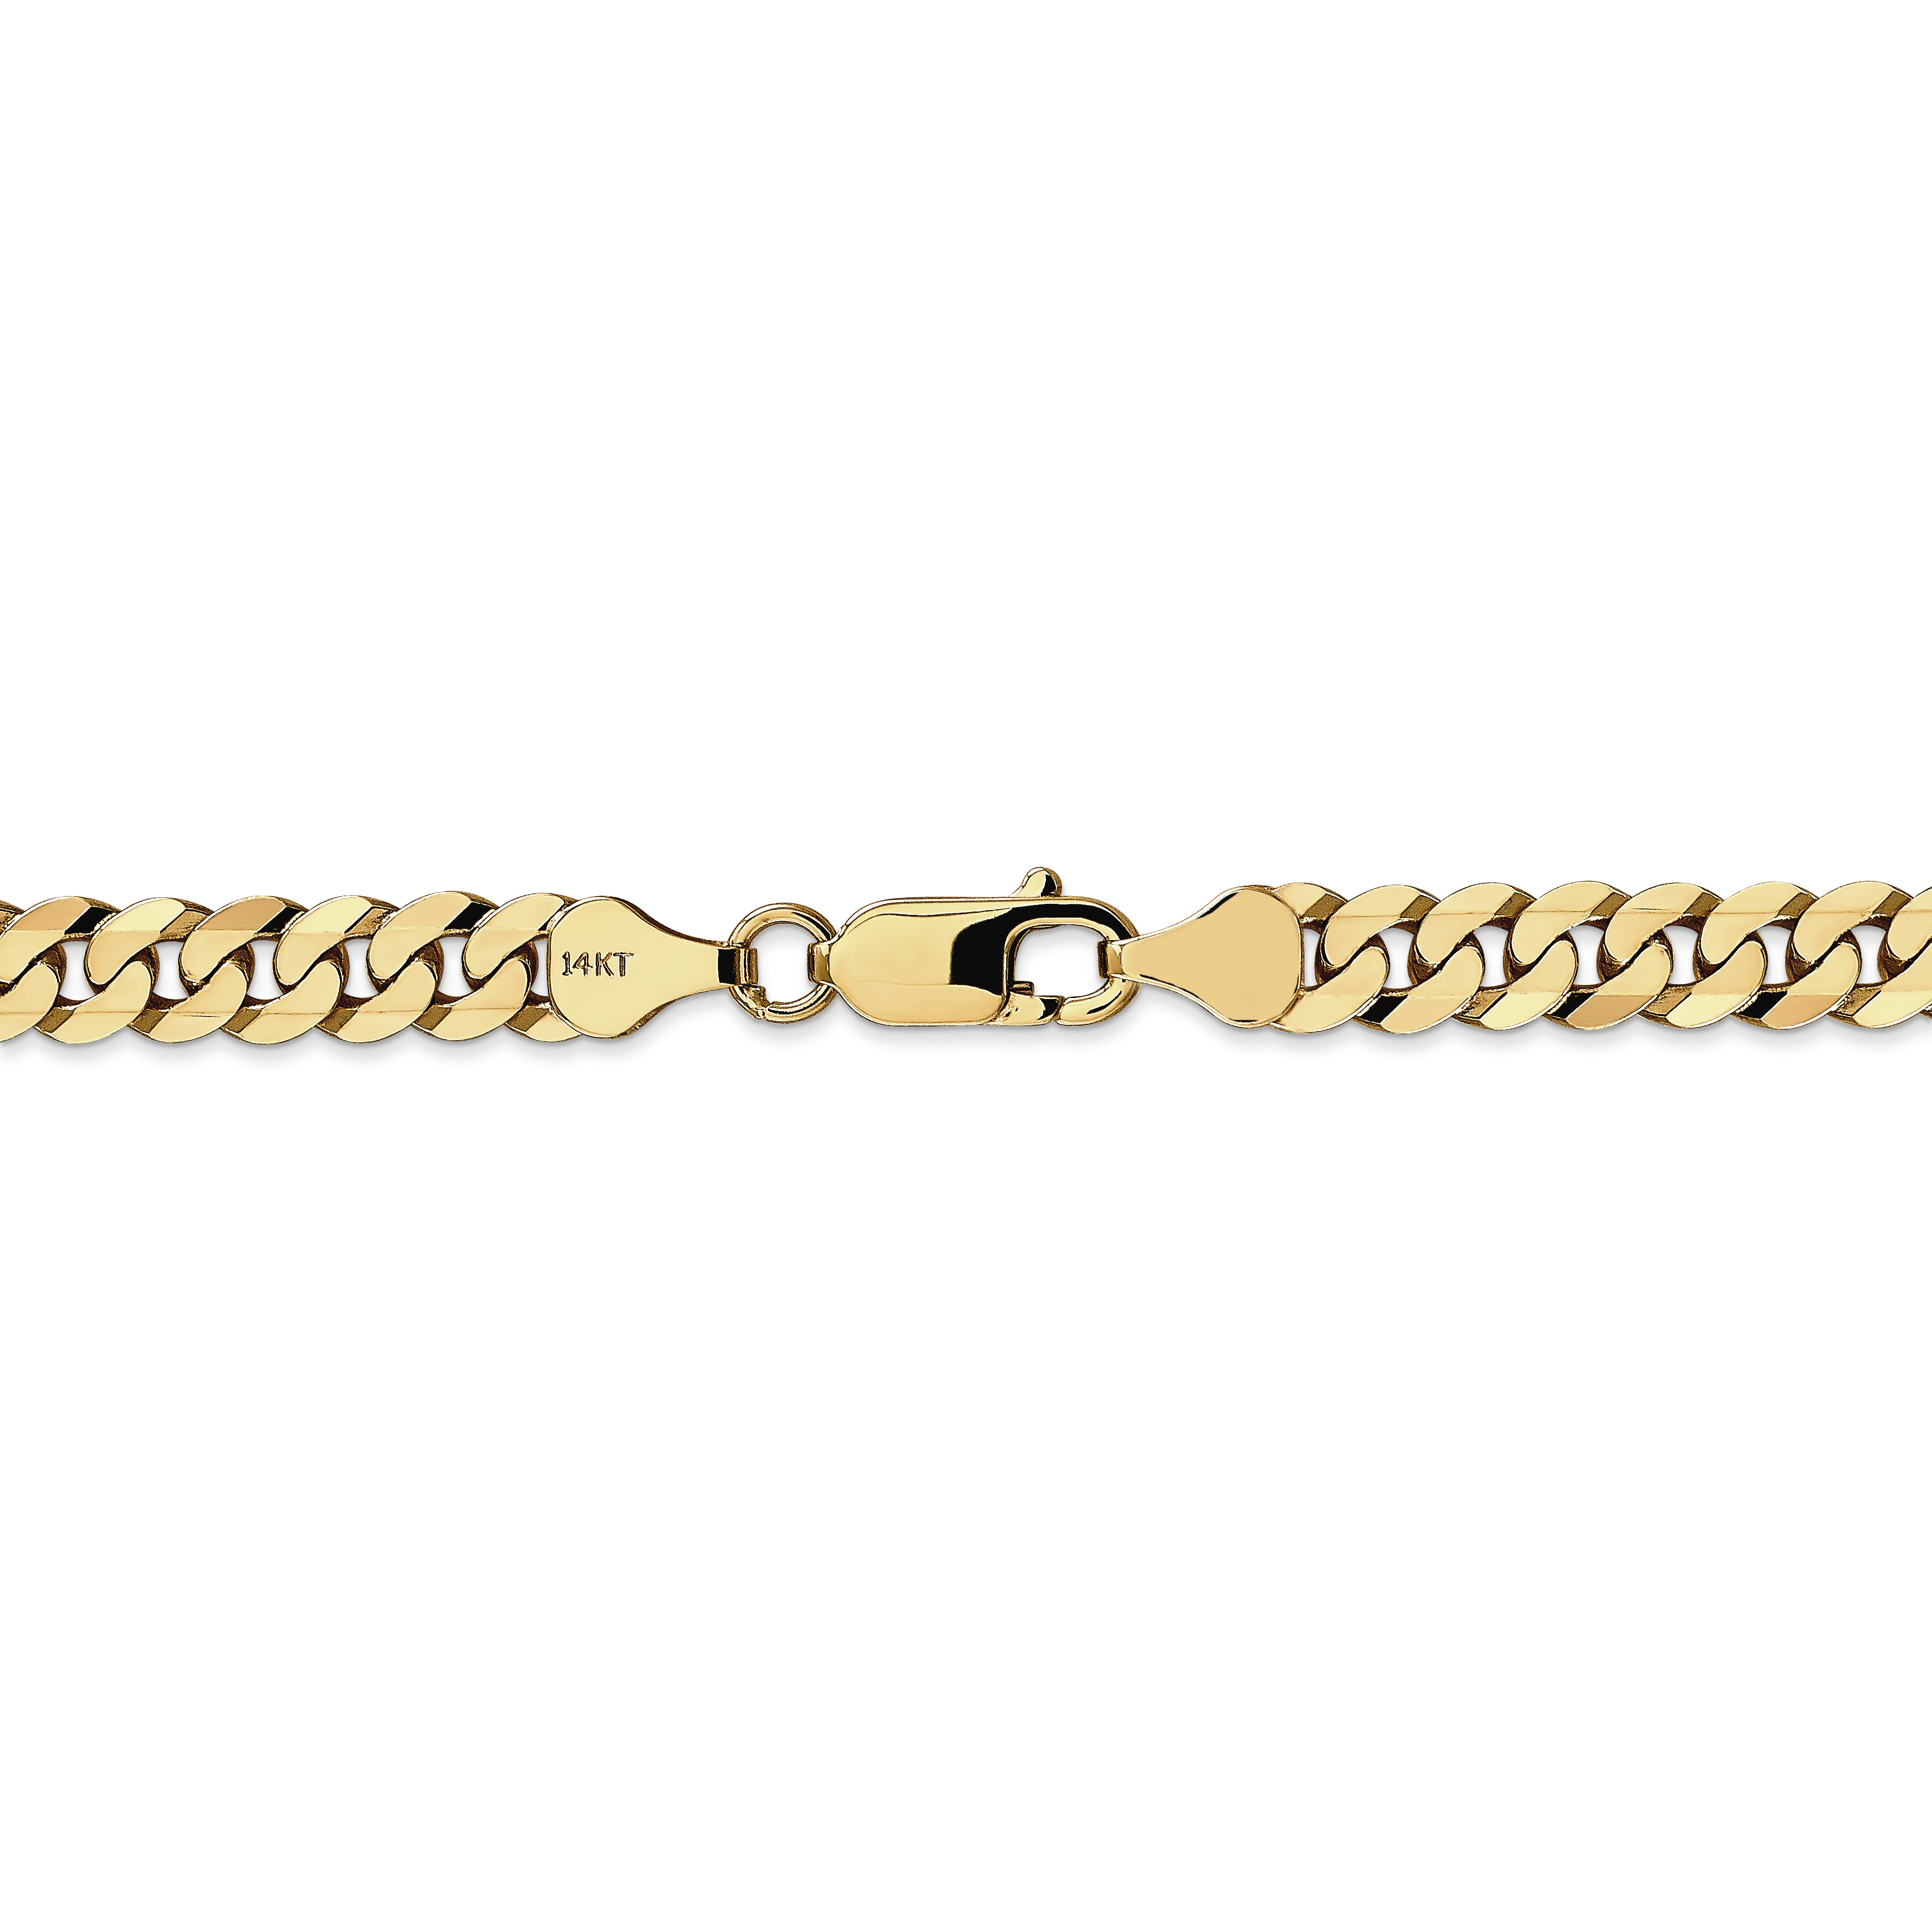 14k Yellow Gold 6.25mm Beveled Link Curb Chain Anklet Ankle Beach Bracelet 7 Inch : Fine Jewelry Gifts For Women For Her - image 3 de 4